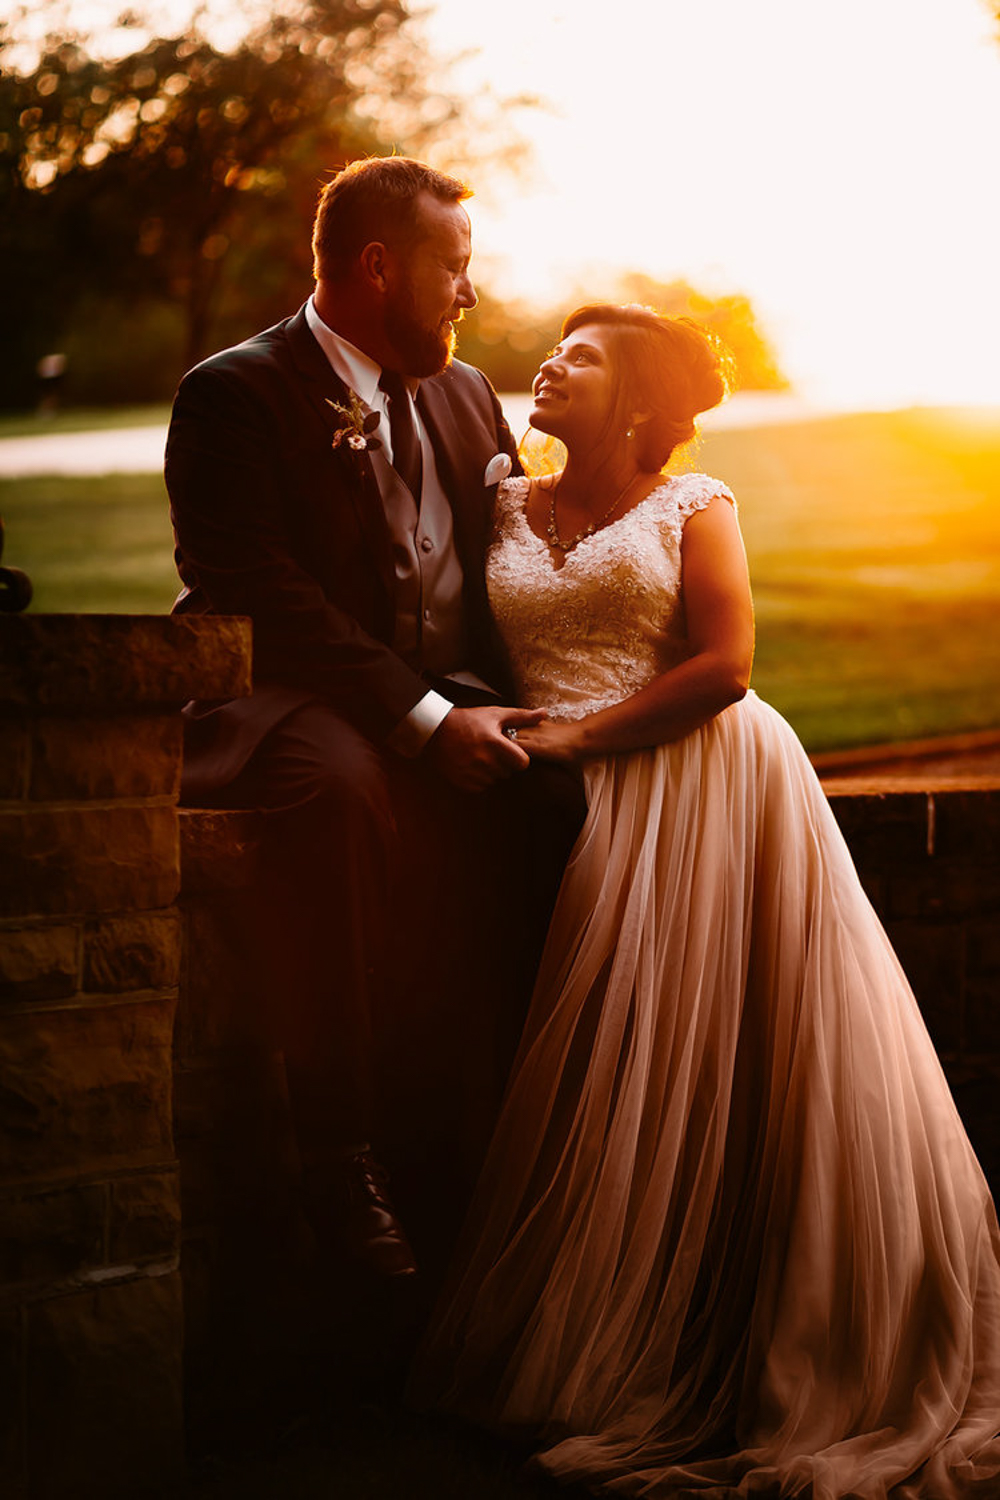 TaylorLaurenPhoto_Columbus_Ohio_Wedding_Engagement_Portrait_Photography-2.jpg